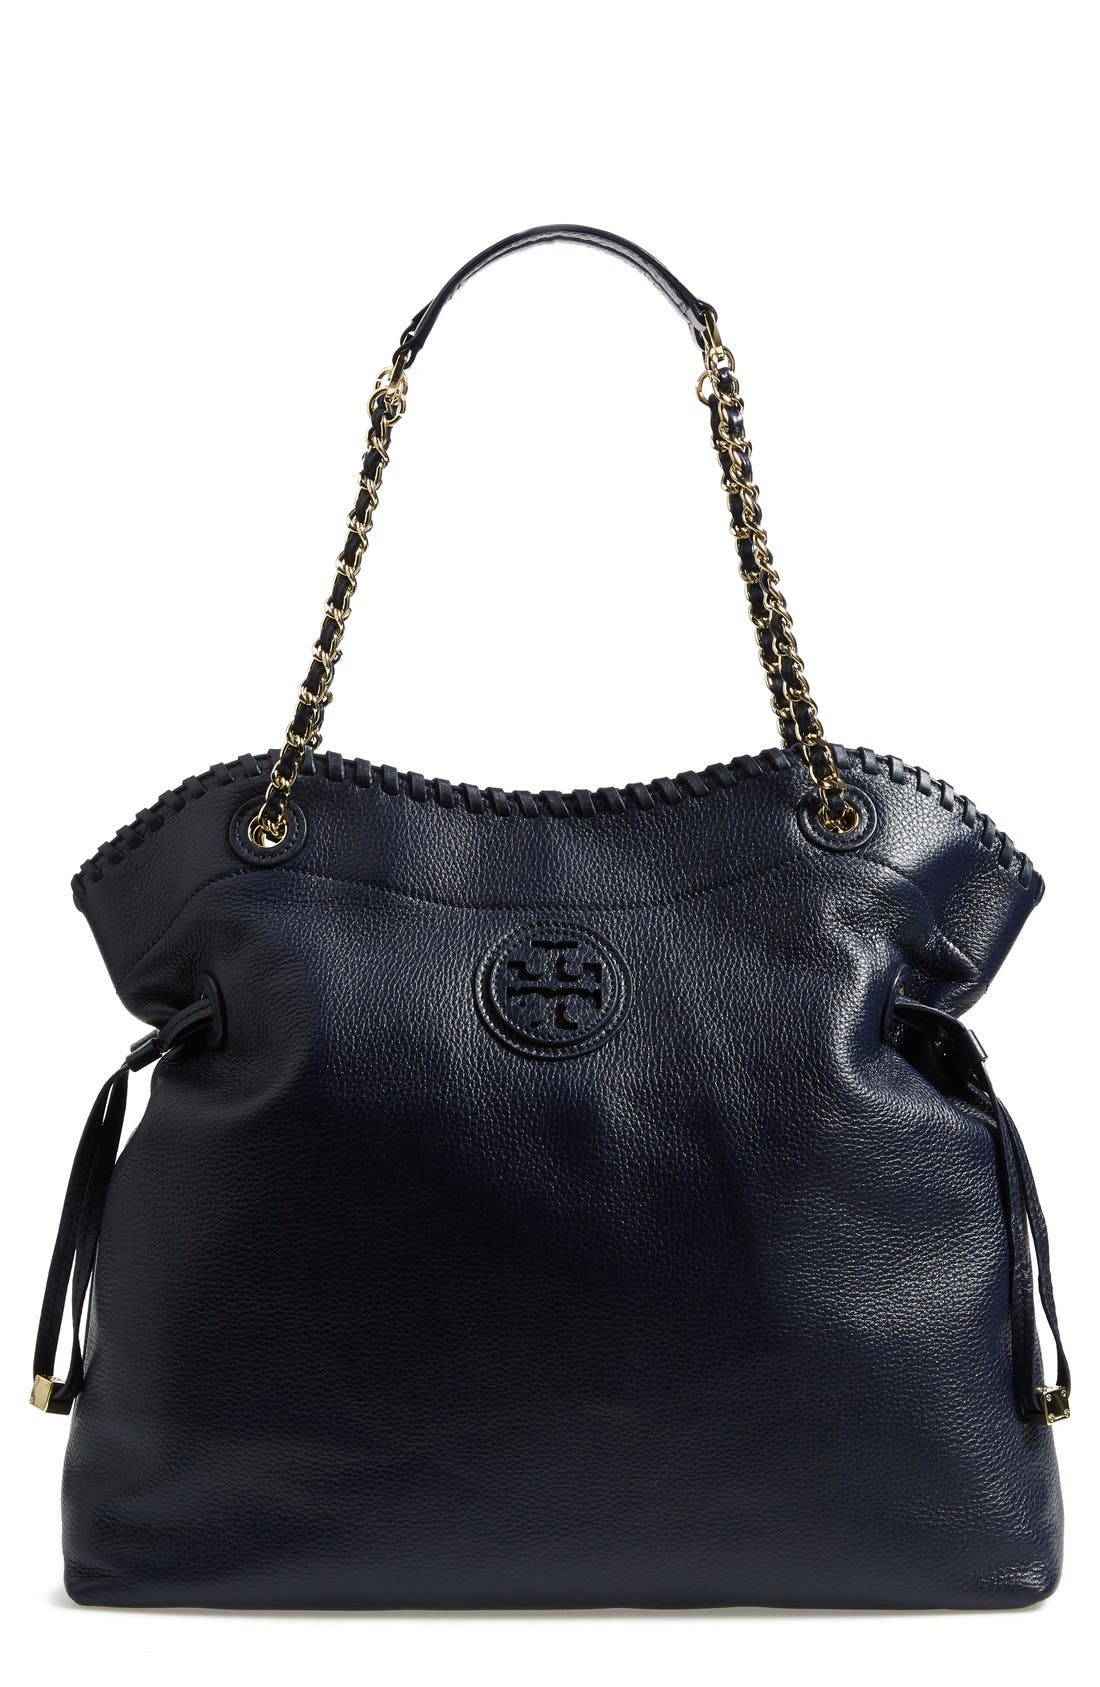 Main Image - Tory Burch 'Marion' Leather Tote